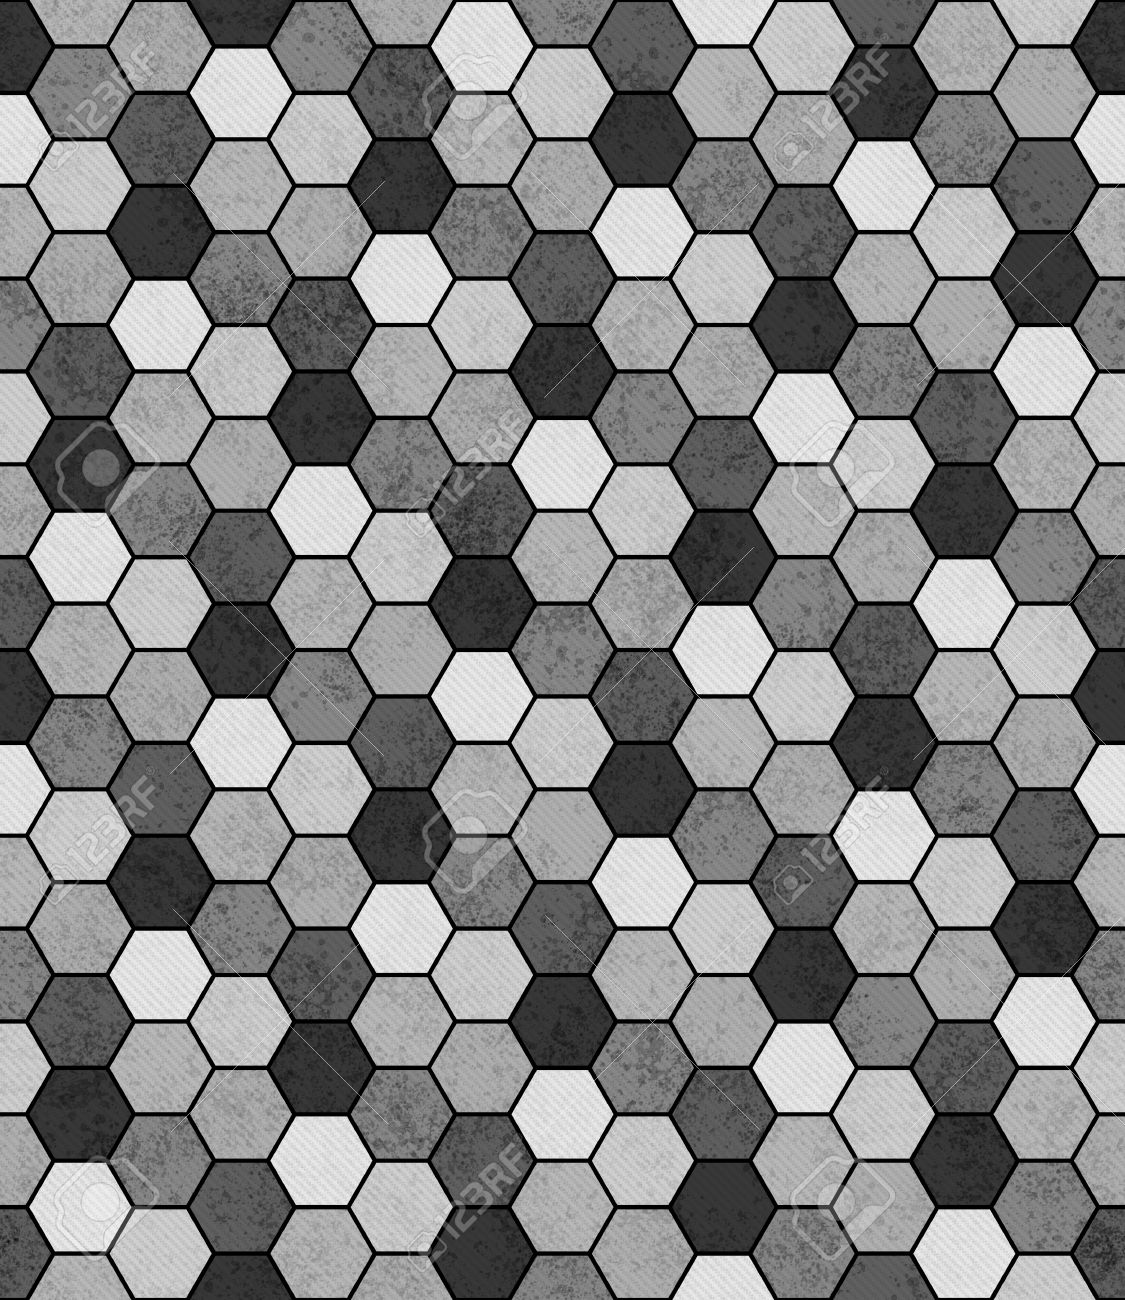 Gray, Black And White Hexagon Mosaic Abstract Geometric Design ...